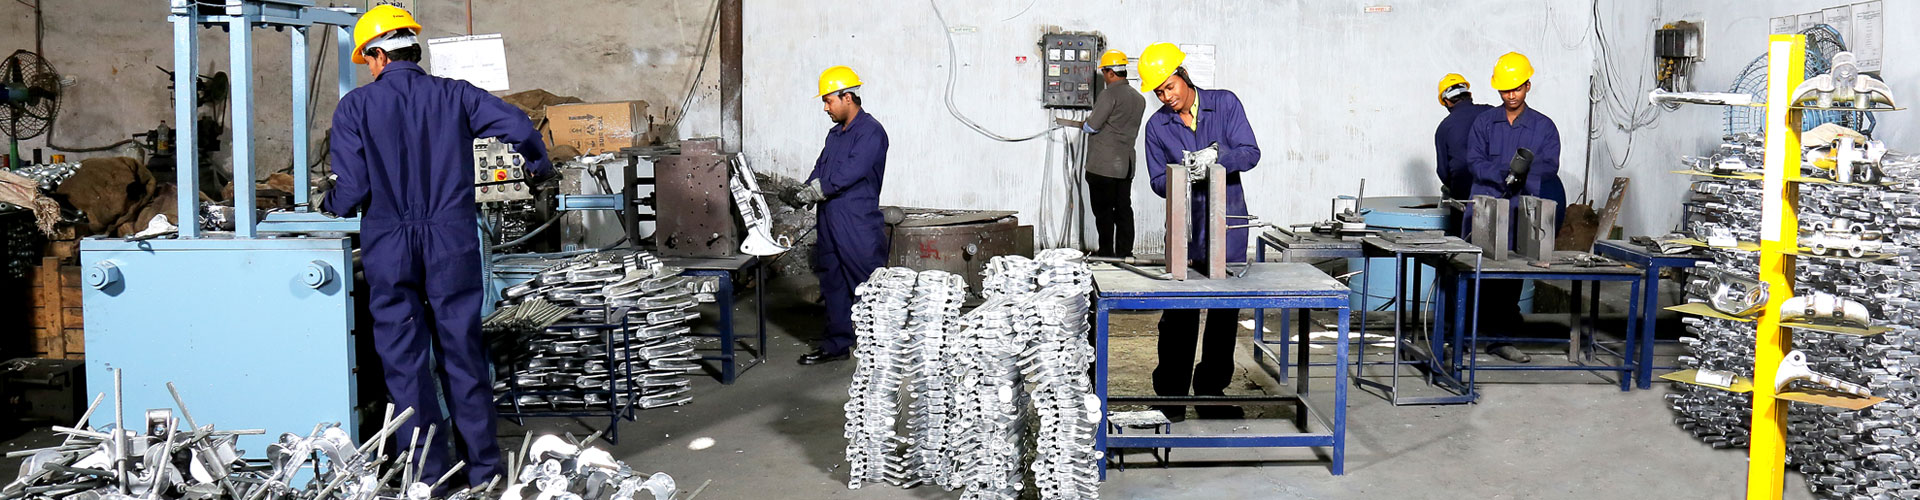 manufacturing-facility001